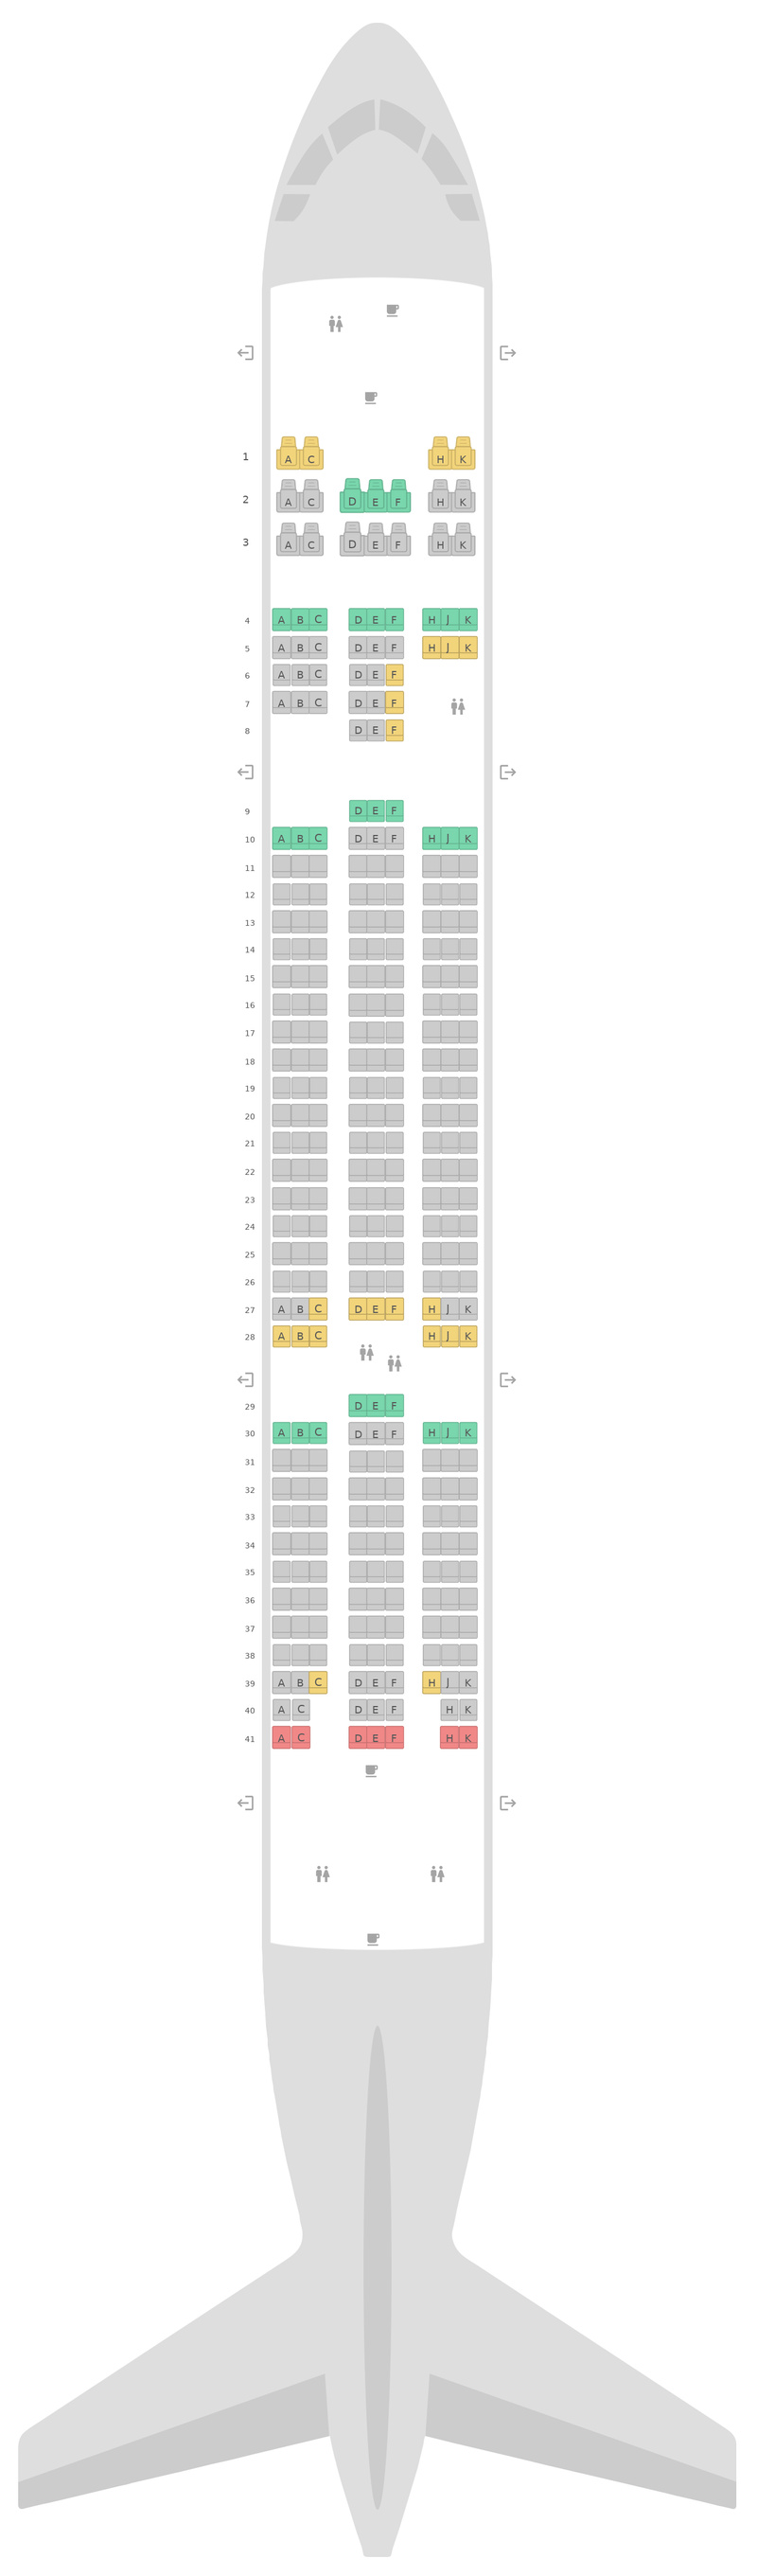 Seat Map Scoot Boeing 787-8 (788) v2